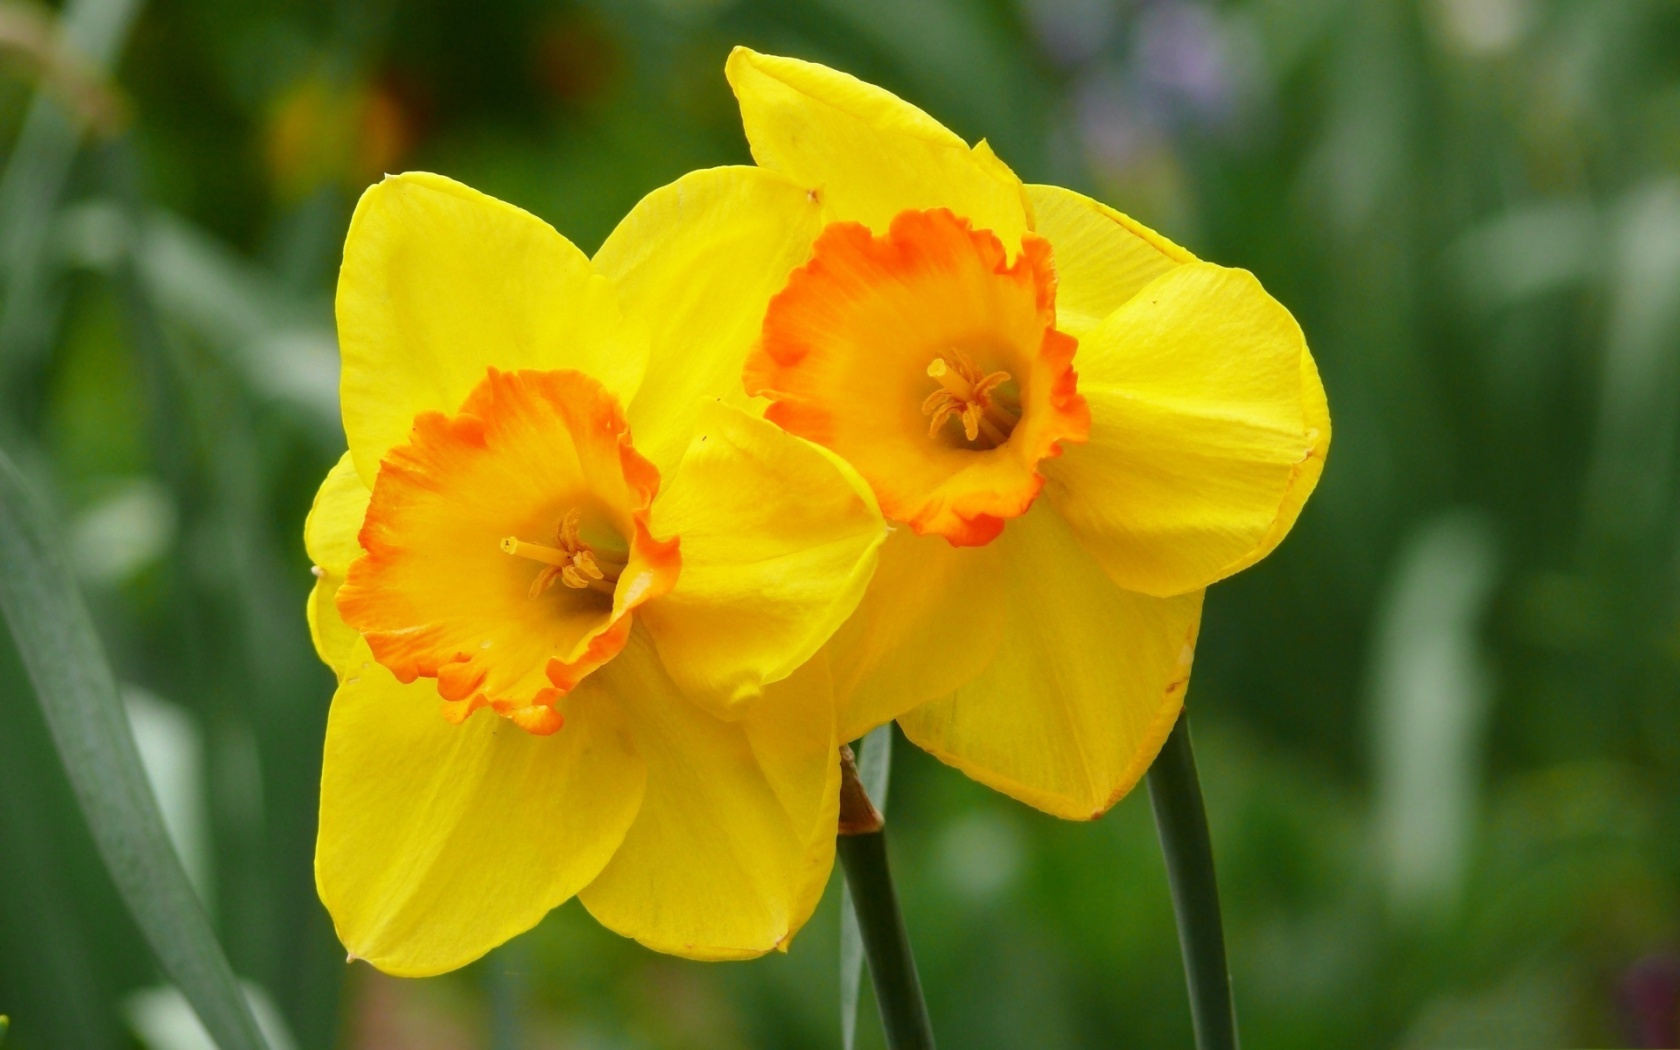 Description: The Wallpaper above is Yellow daffodils hd Wallpaper in 1496